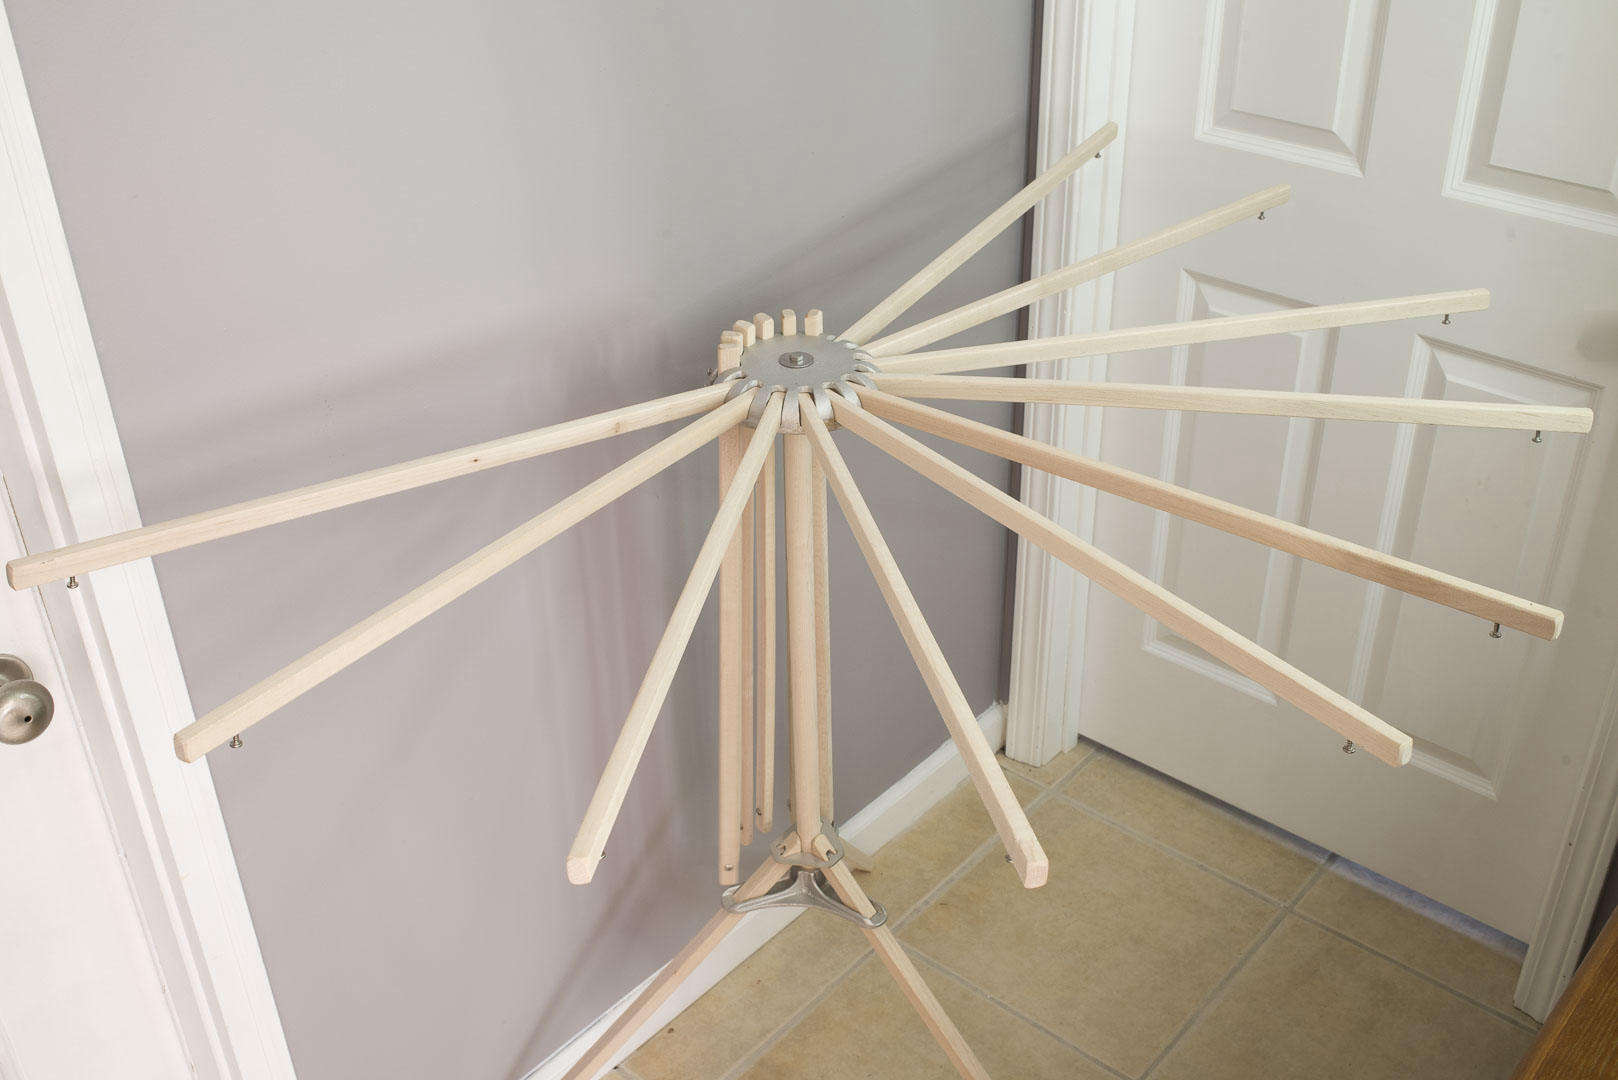 "Above: The arrival of the Best Drying Rack has reaffirmed what I have always known: ""When things are simple and easy to use, people (teens included) actually use them."" Made in the US of maple hardwood dowels and corrosion-resistant steel, the Best Drying Rack features stable tripod construction; $79.00."